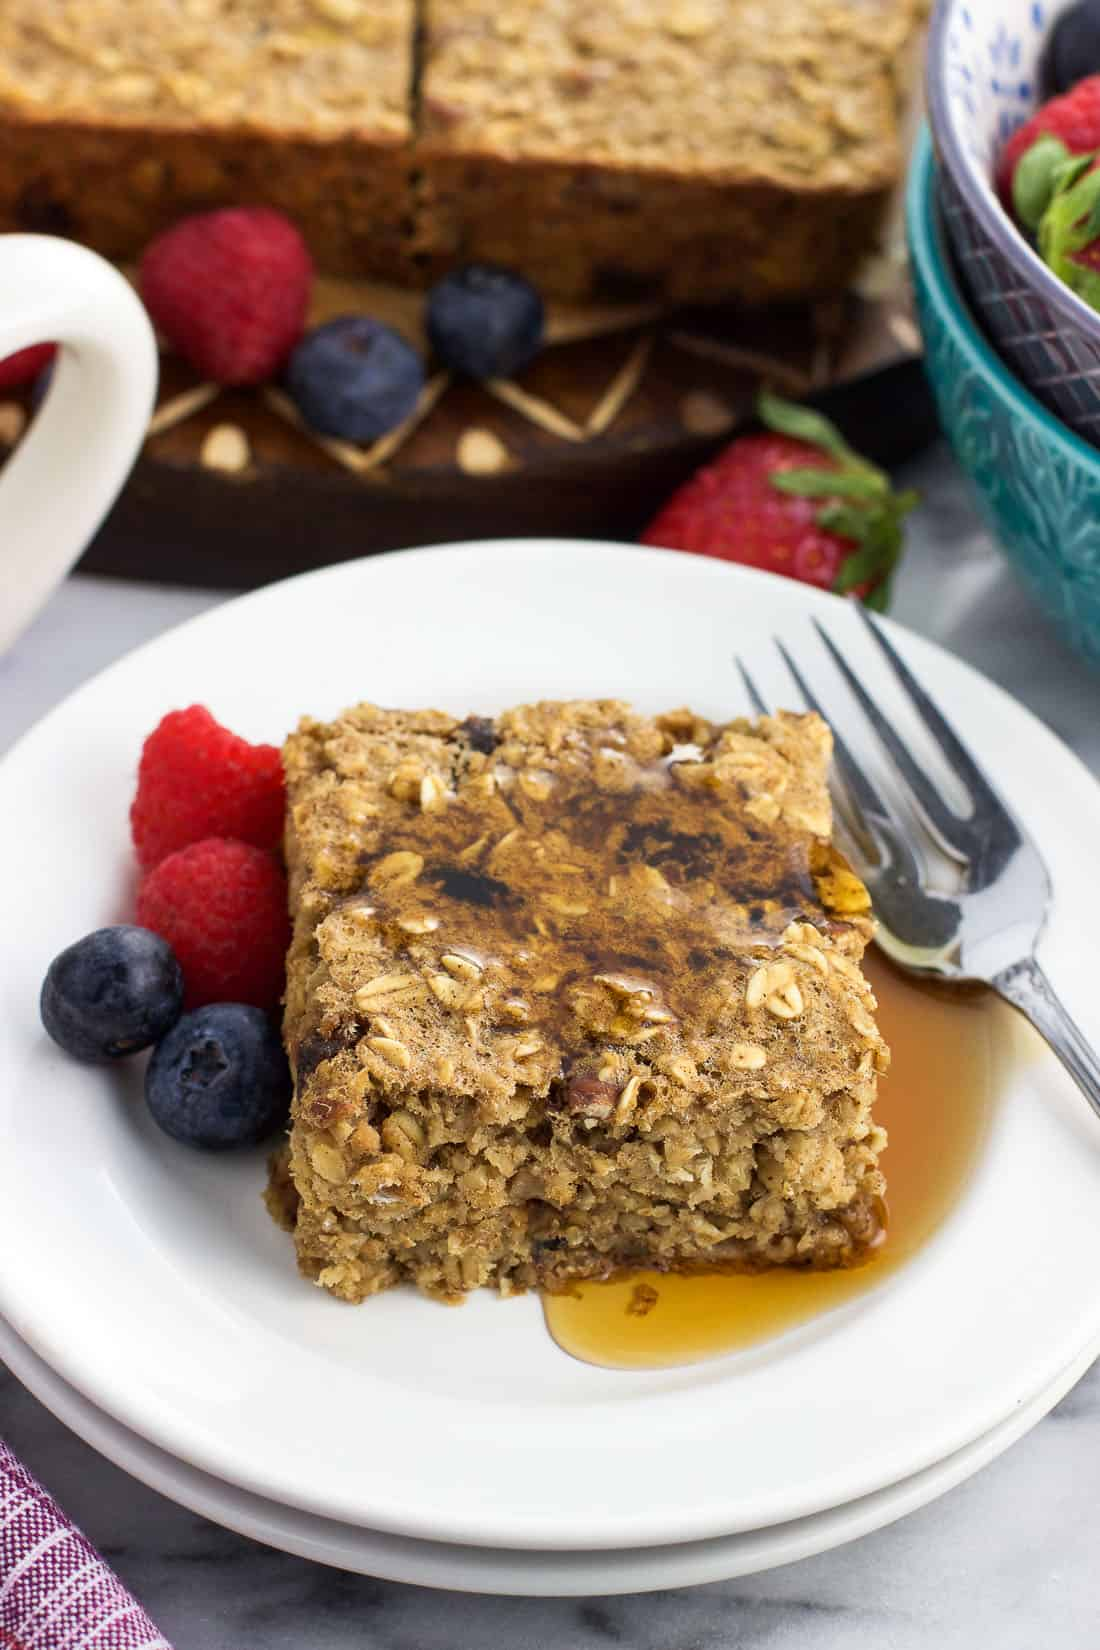 A maple syrup drizzled square of baked oatmeal on a plate with a fork and berries.